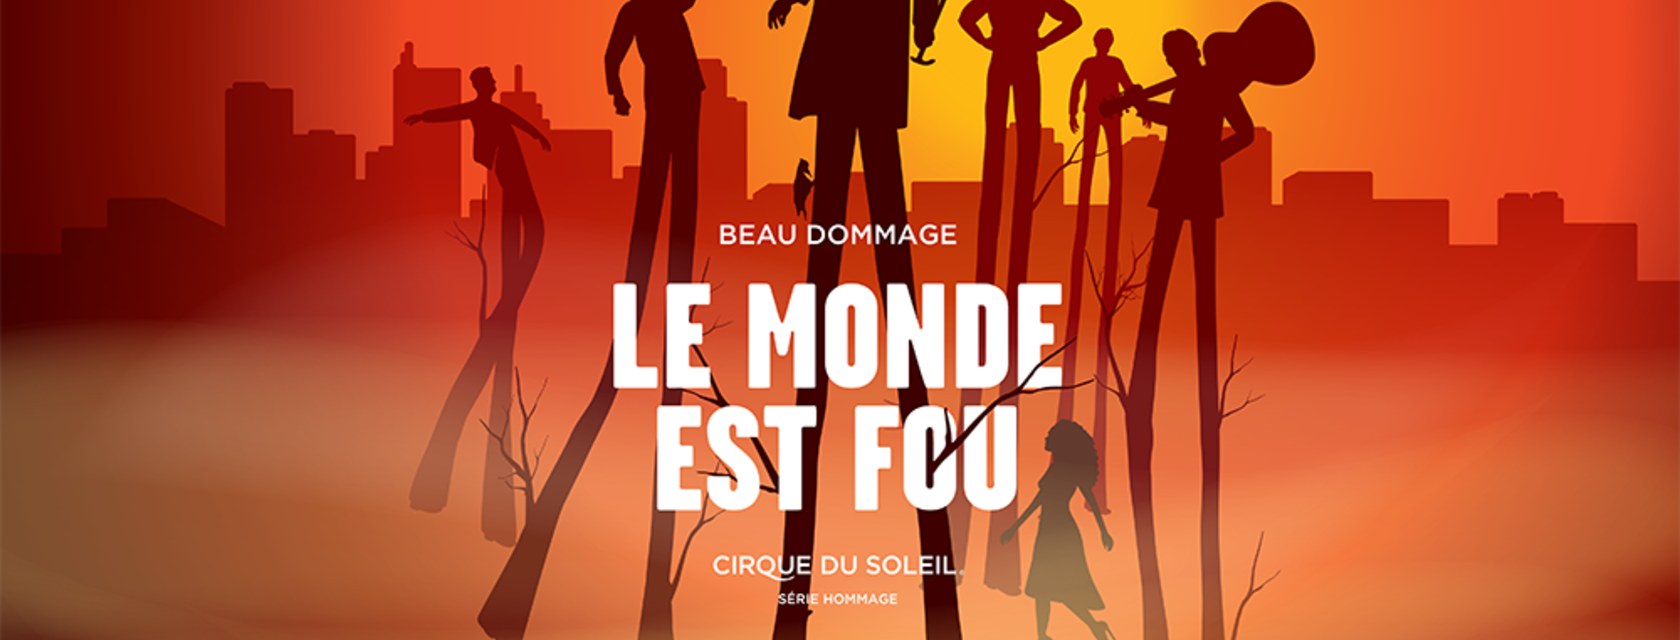 Le Monde est Fou, imagined by the Cirque du Soleil, a great success!